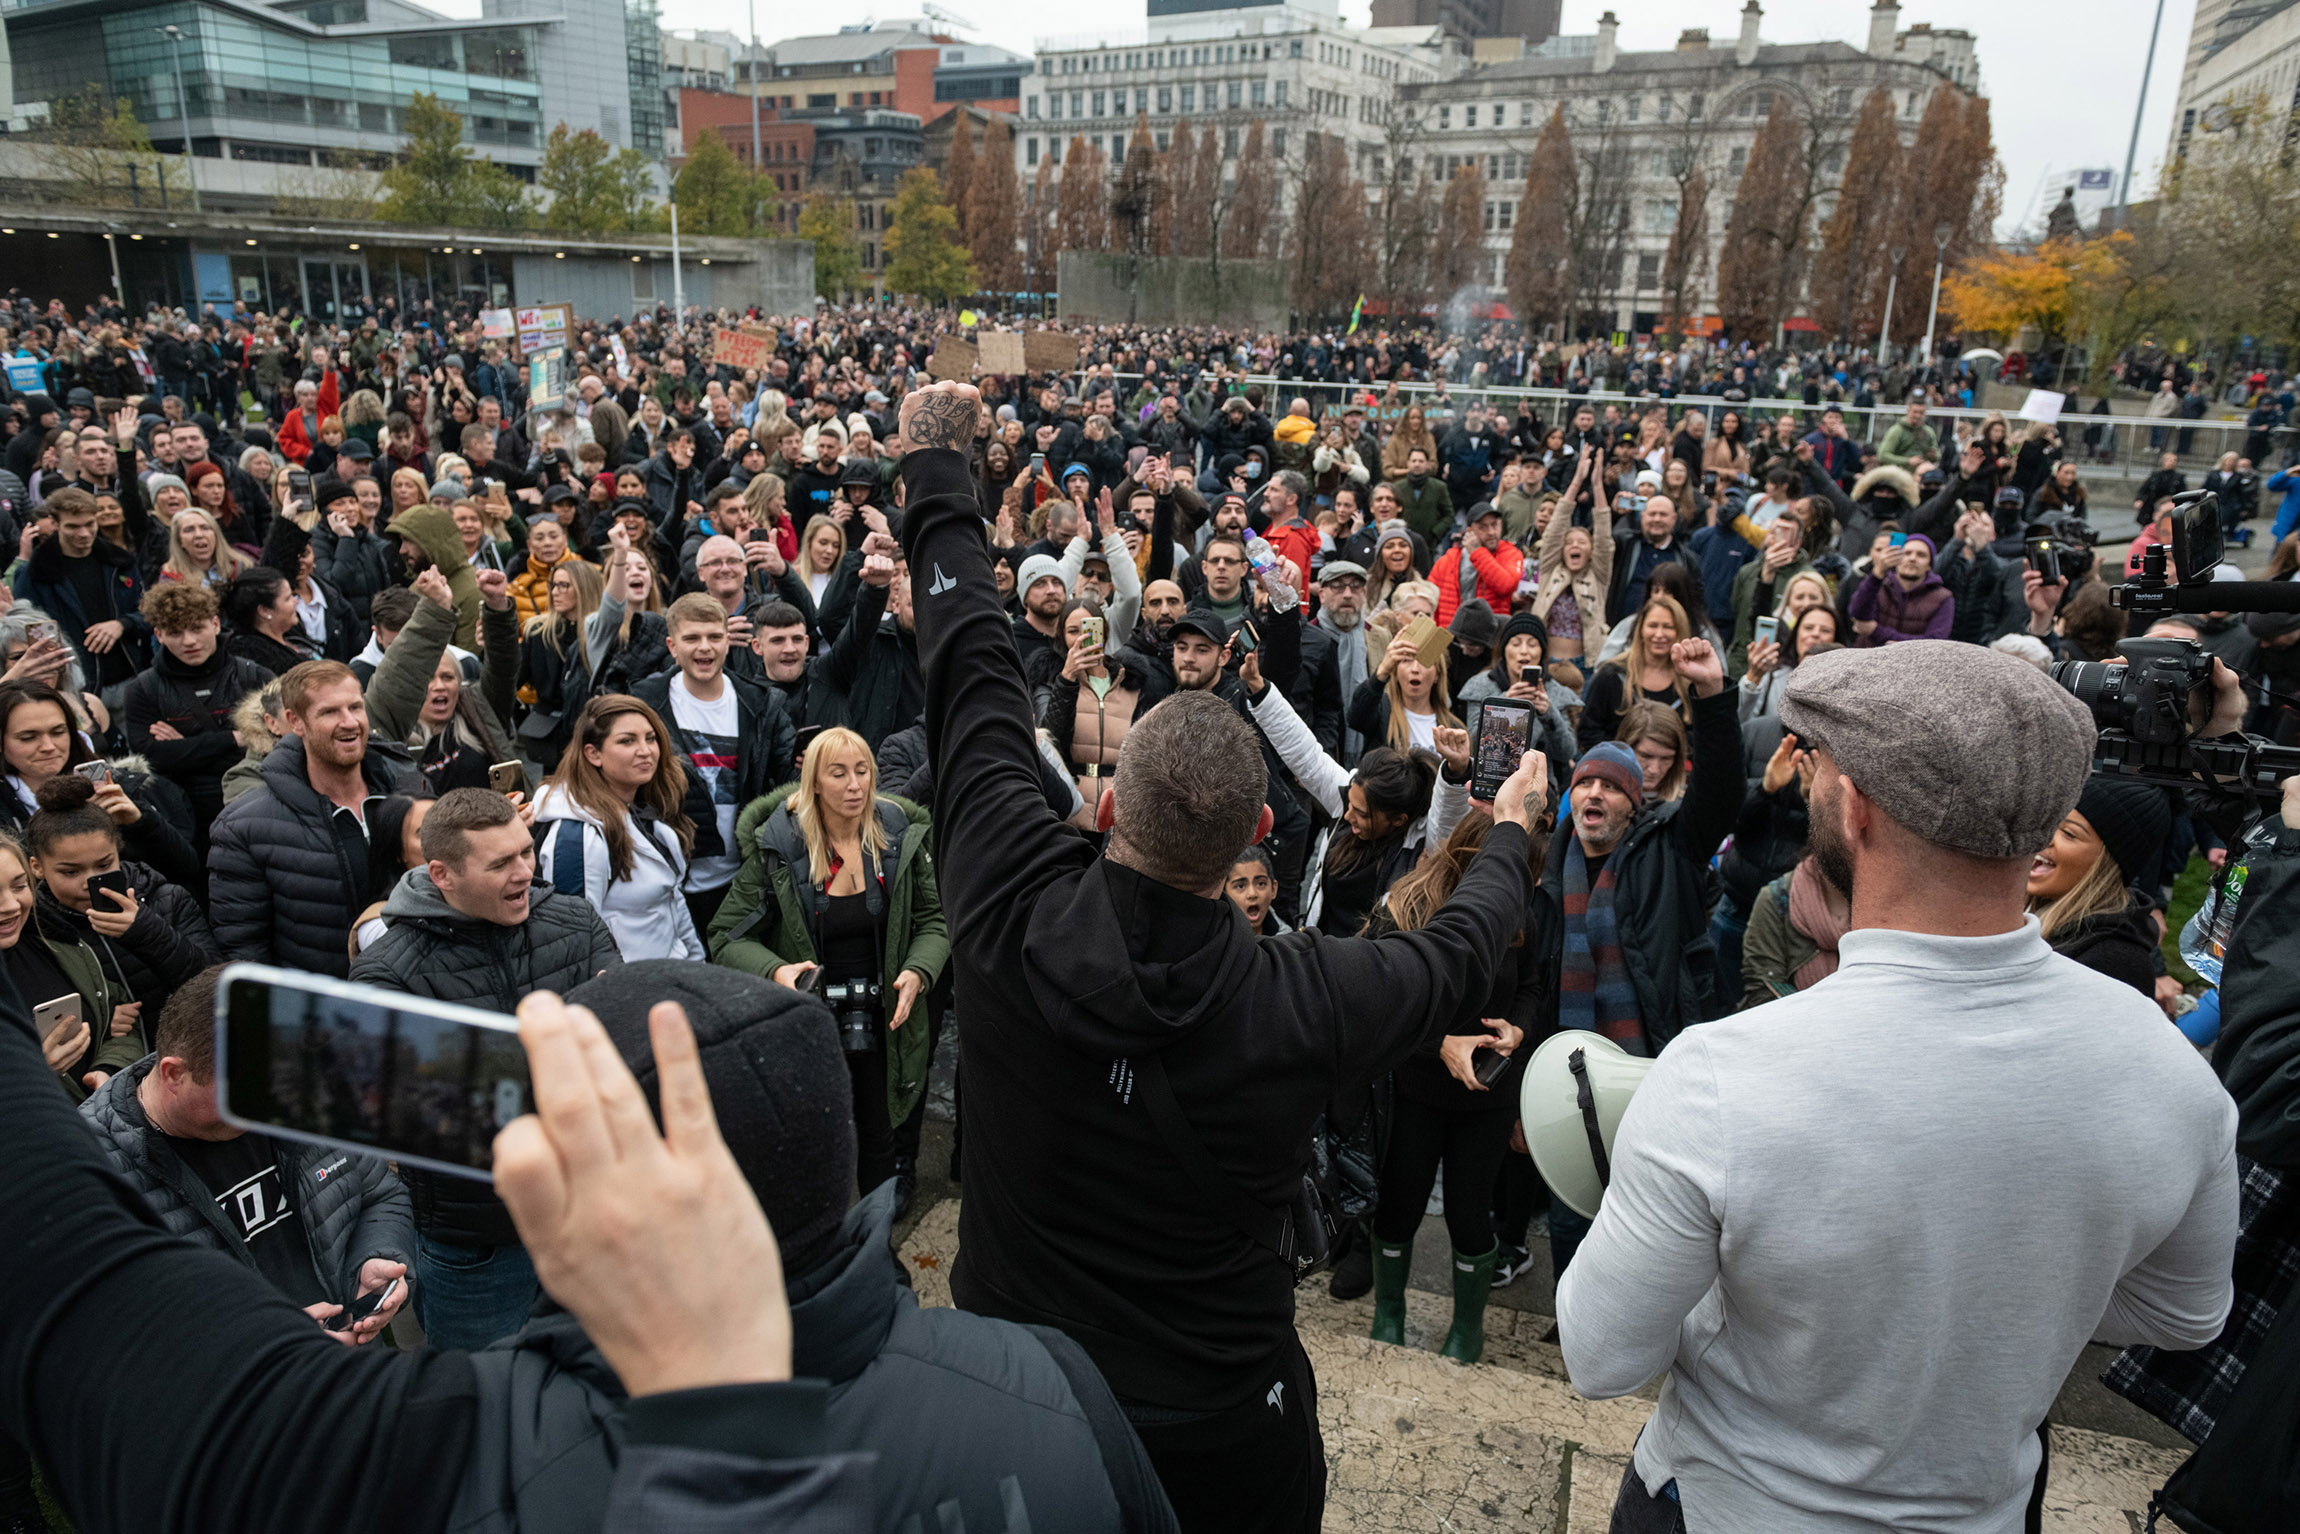 Protesters gather at St Peters Square during an anti-lockdown protest in Manchester, England on Sunday, November 8.